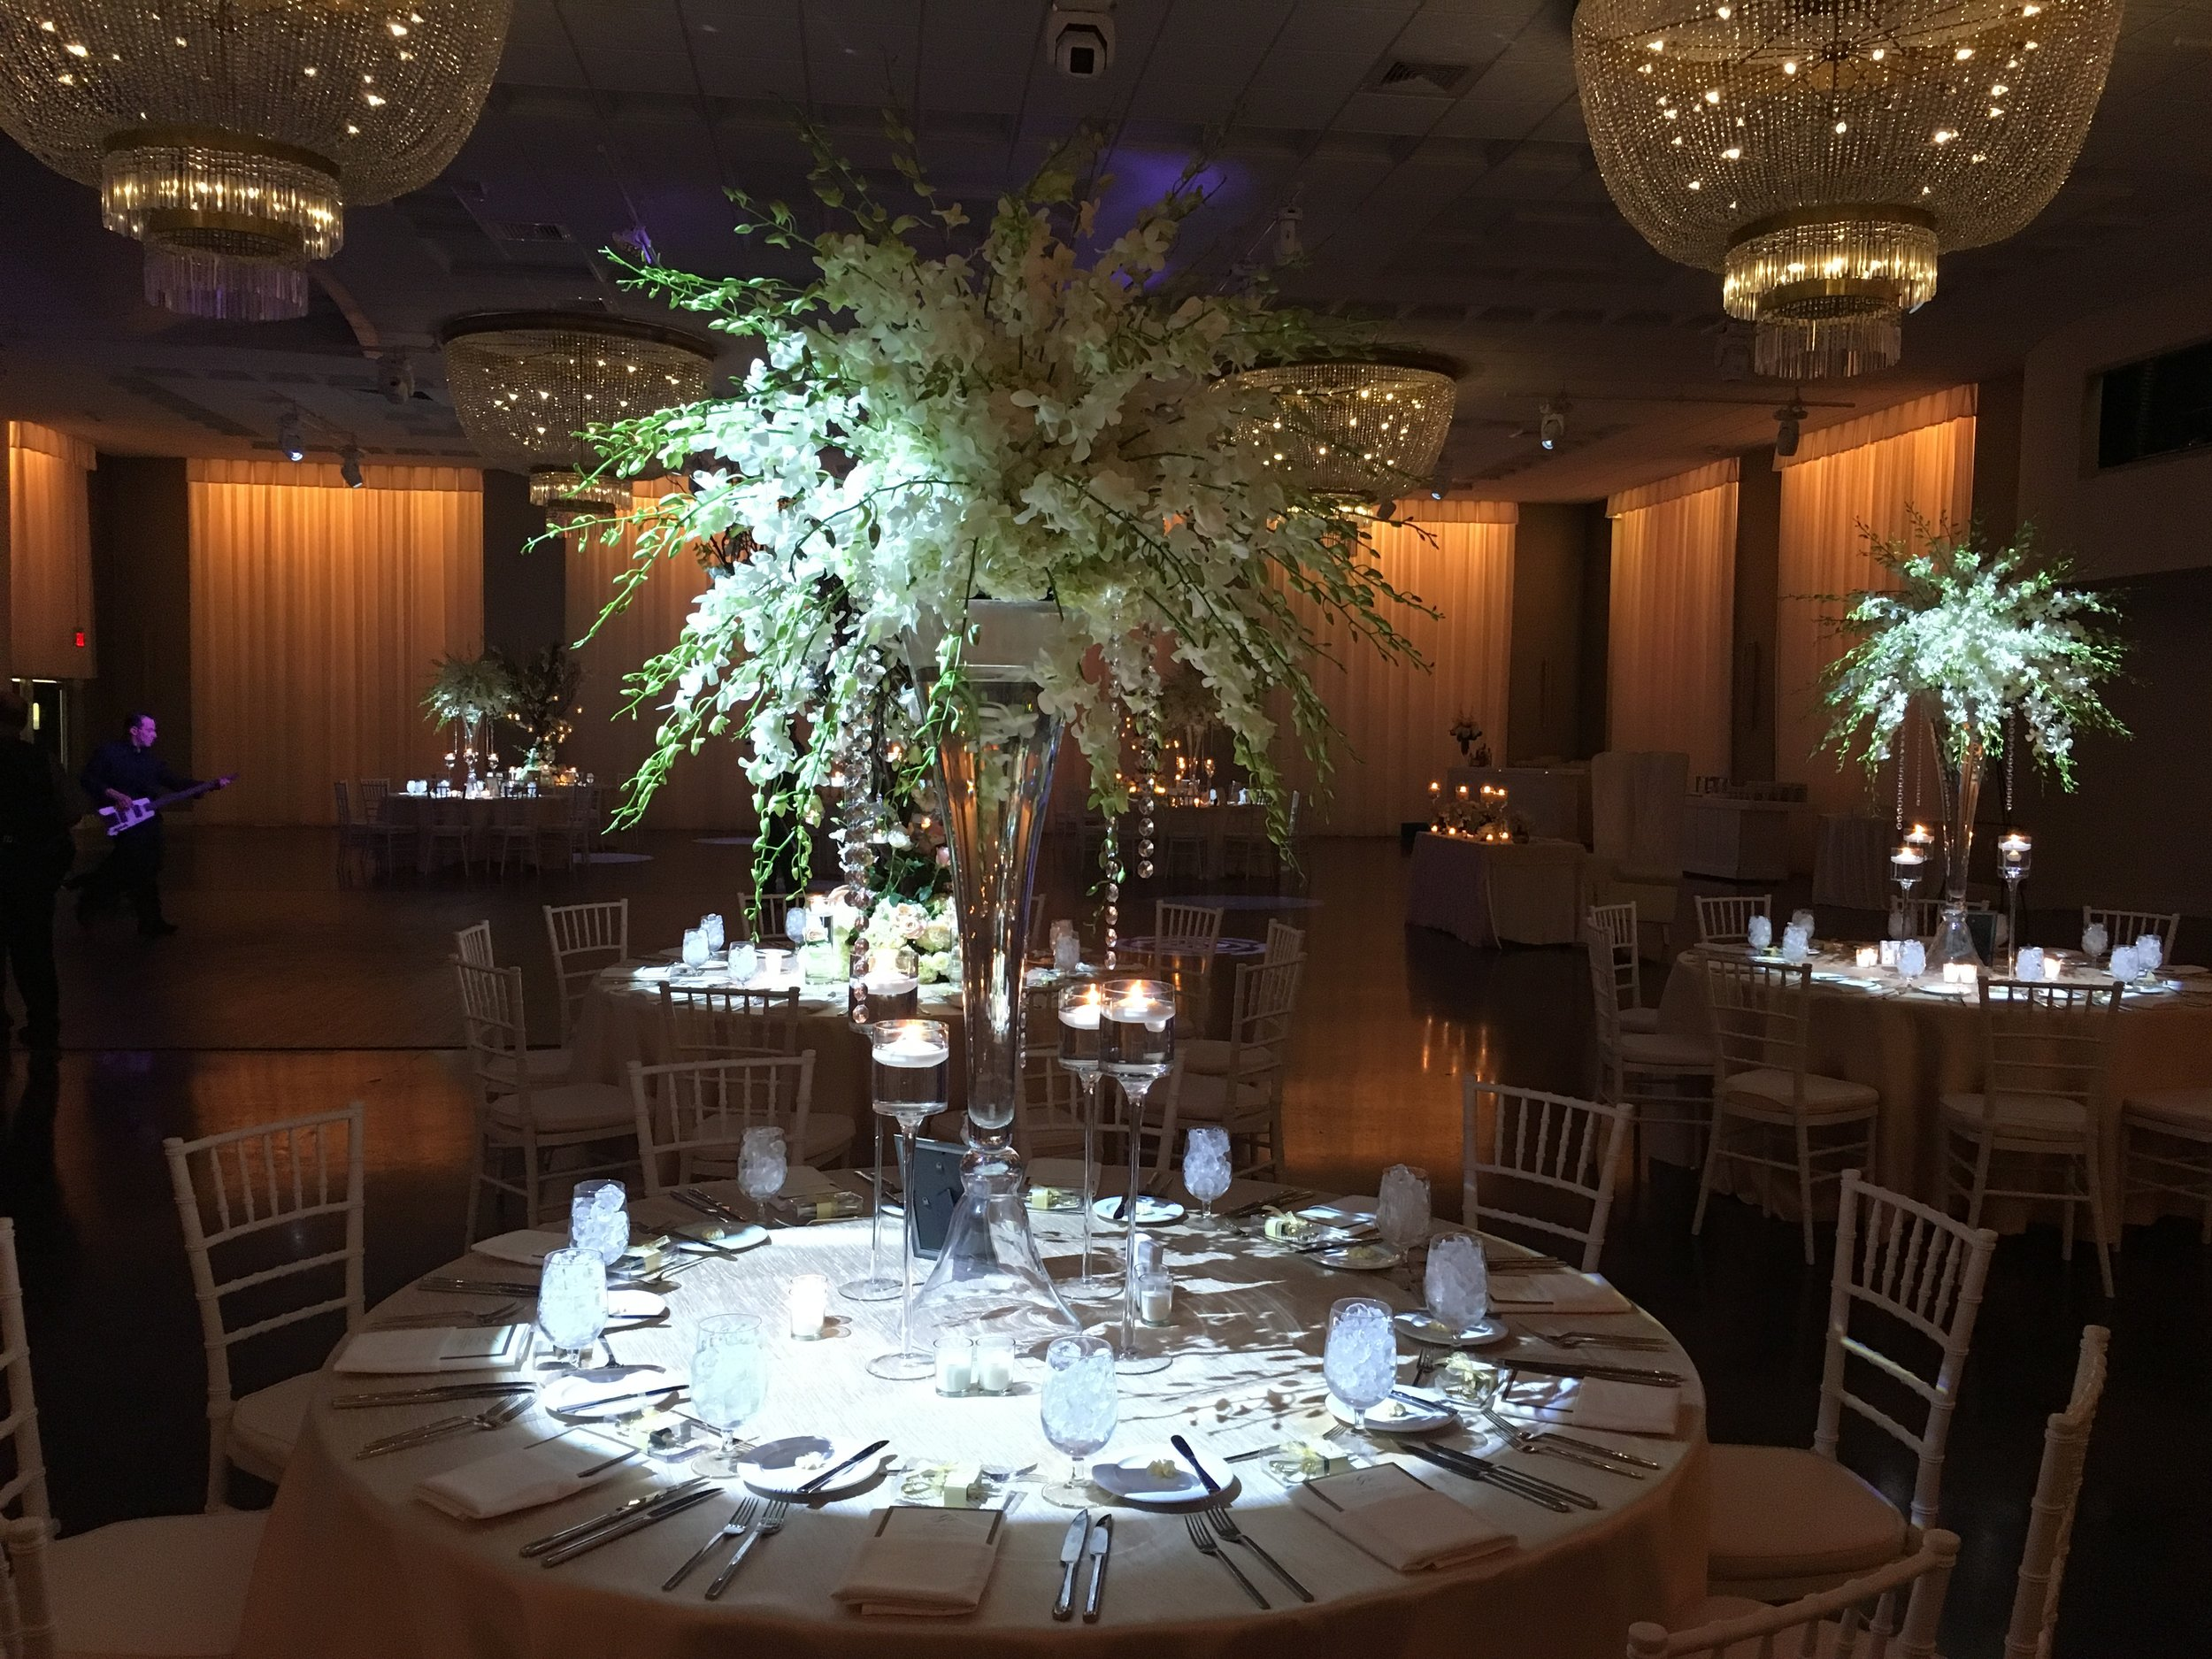 Miami Beach Venue & Event Space: Corporate, Galas, Weddings, Social